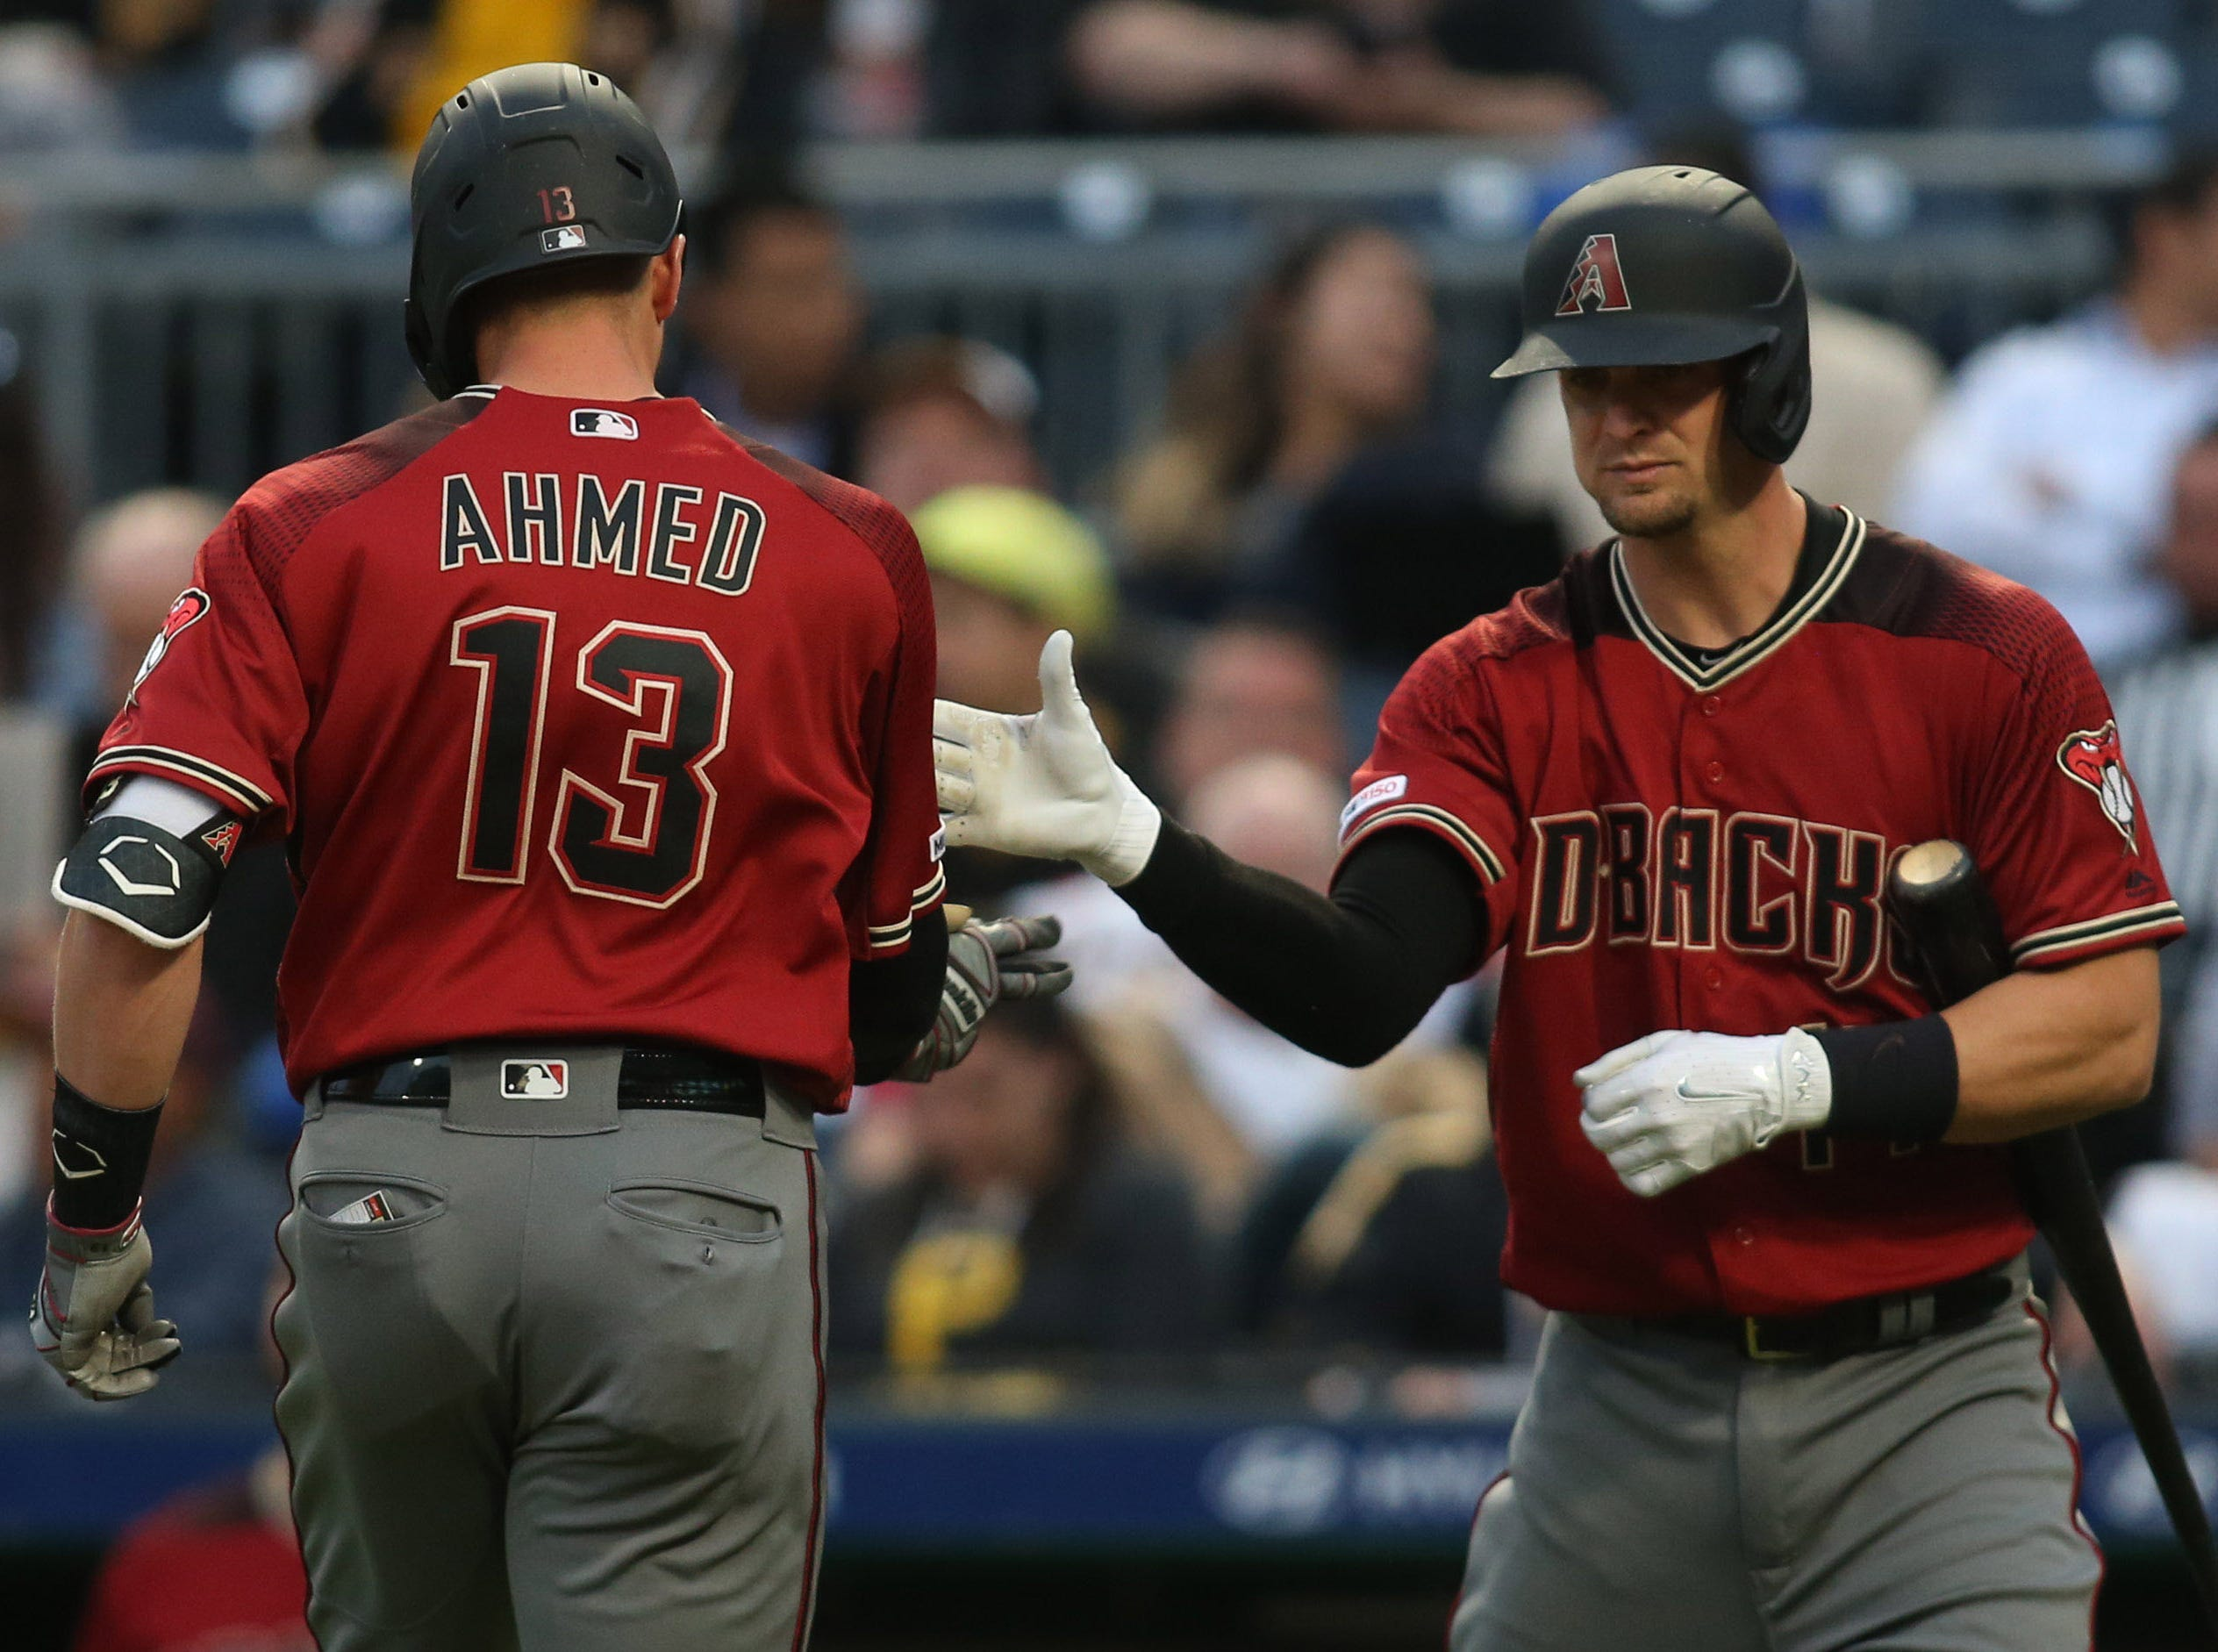 Apr 24, 2019; Pittsburgh, PA, USA;  Arizona Diamondbacks catcher Caleb Joseph (R) congratulates shortstop Nick Ahmed (13) after Ahmed hit a solo home run against the Pittsburgh Pirates during the second inning at PNC Park. Mandatory Credit: Charles LeClaire-USA TODAY Sports